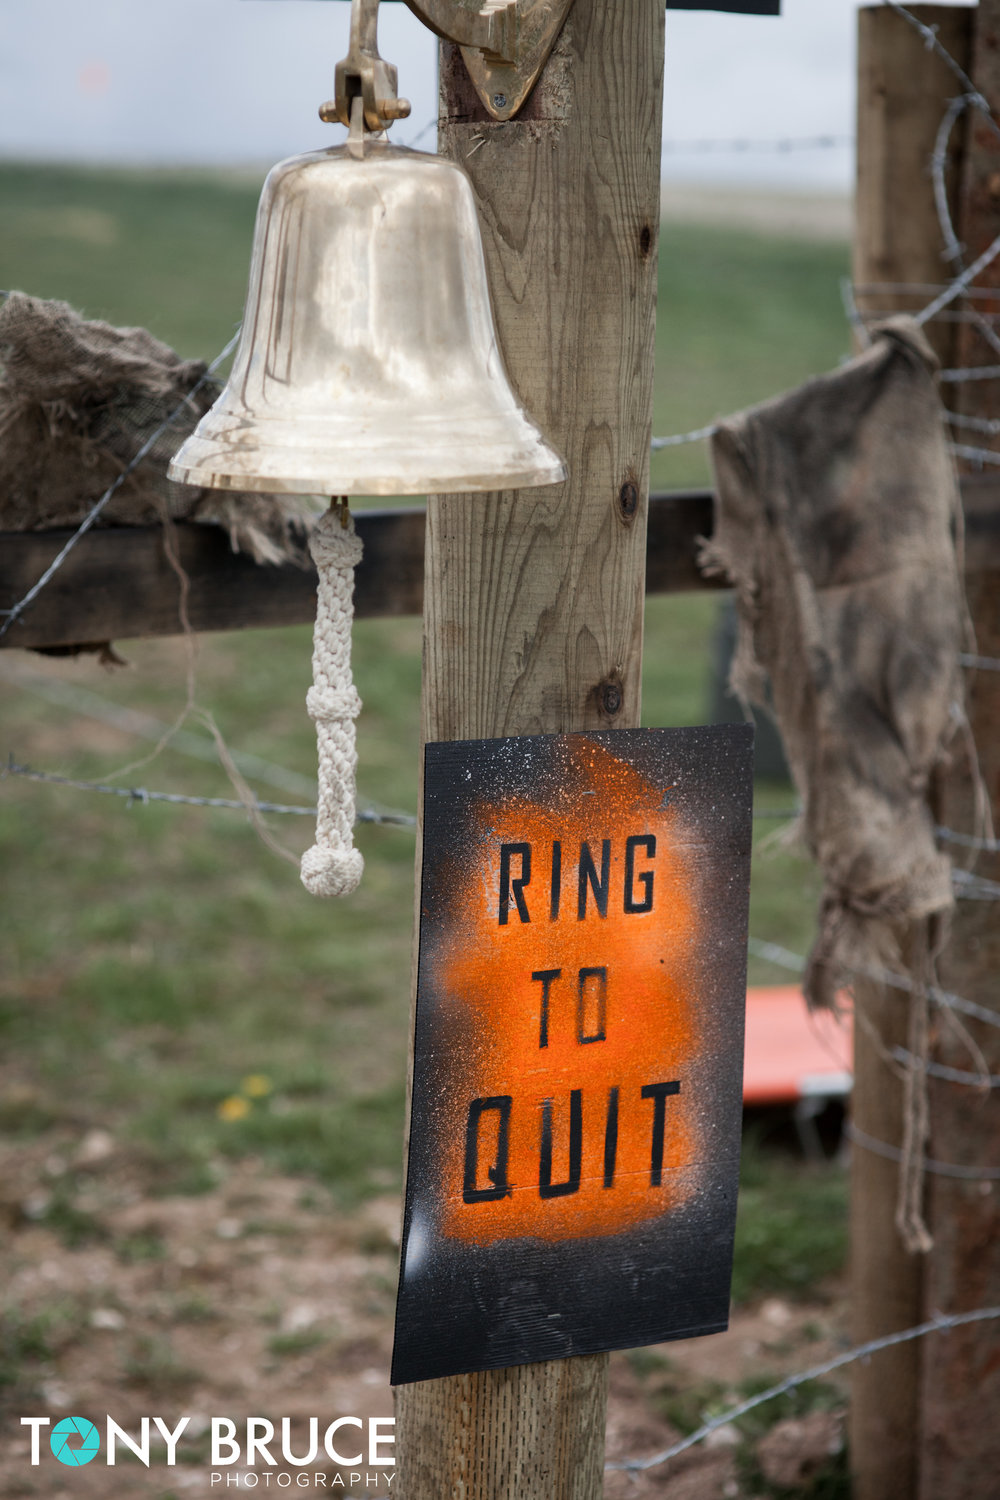 It's simple. If you want to quit, ring the bell and take your arm band off.